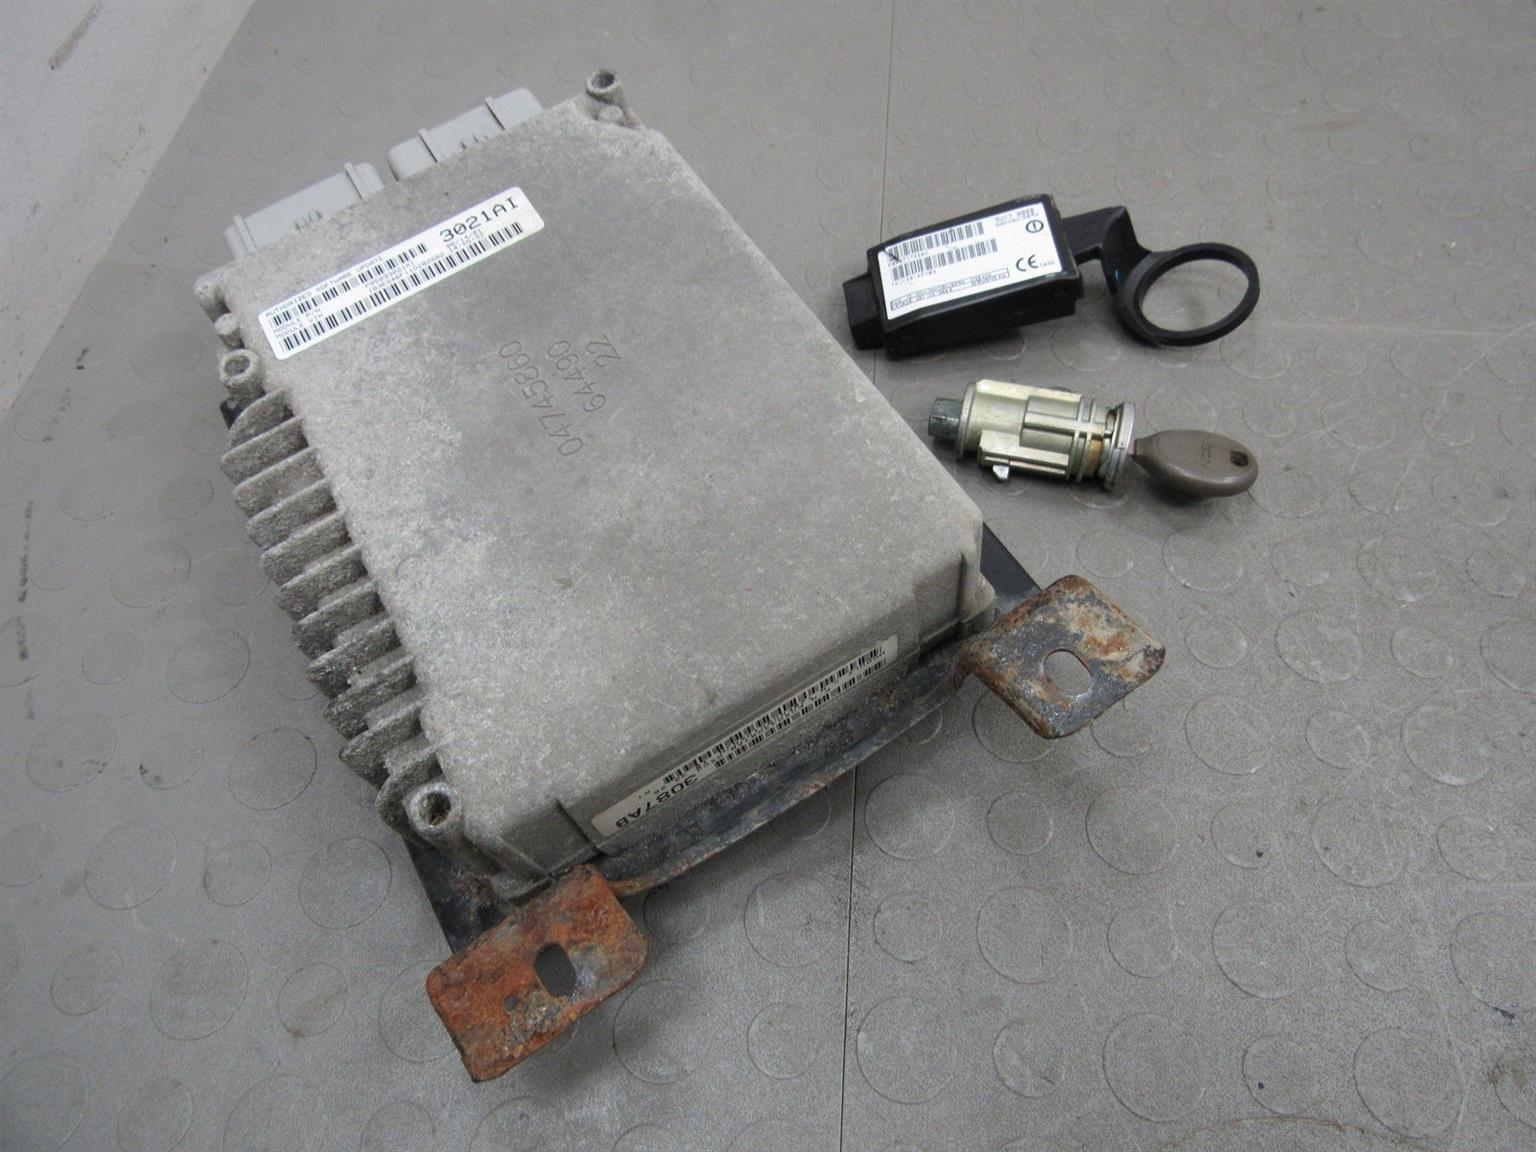 Chrysler neon 2.0 Computer box/ lockset for sale